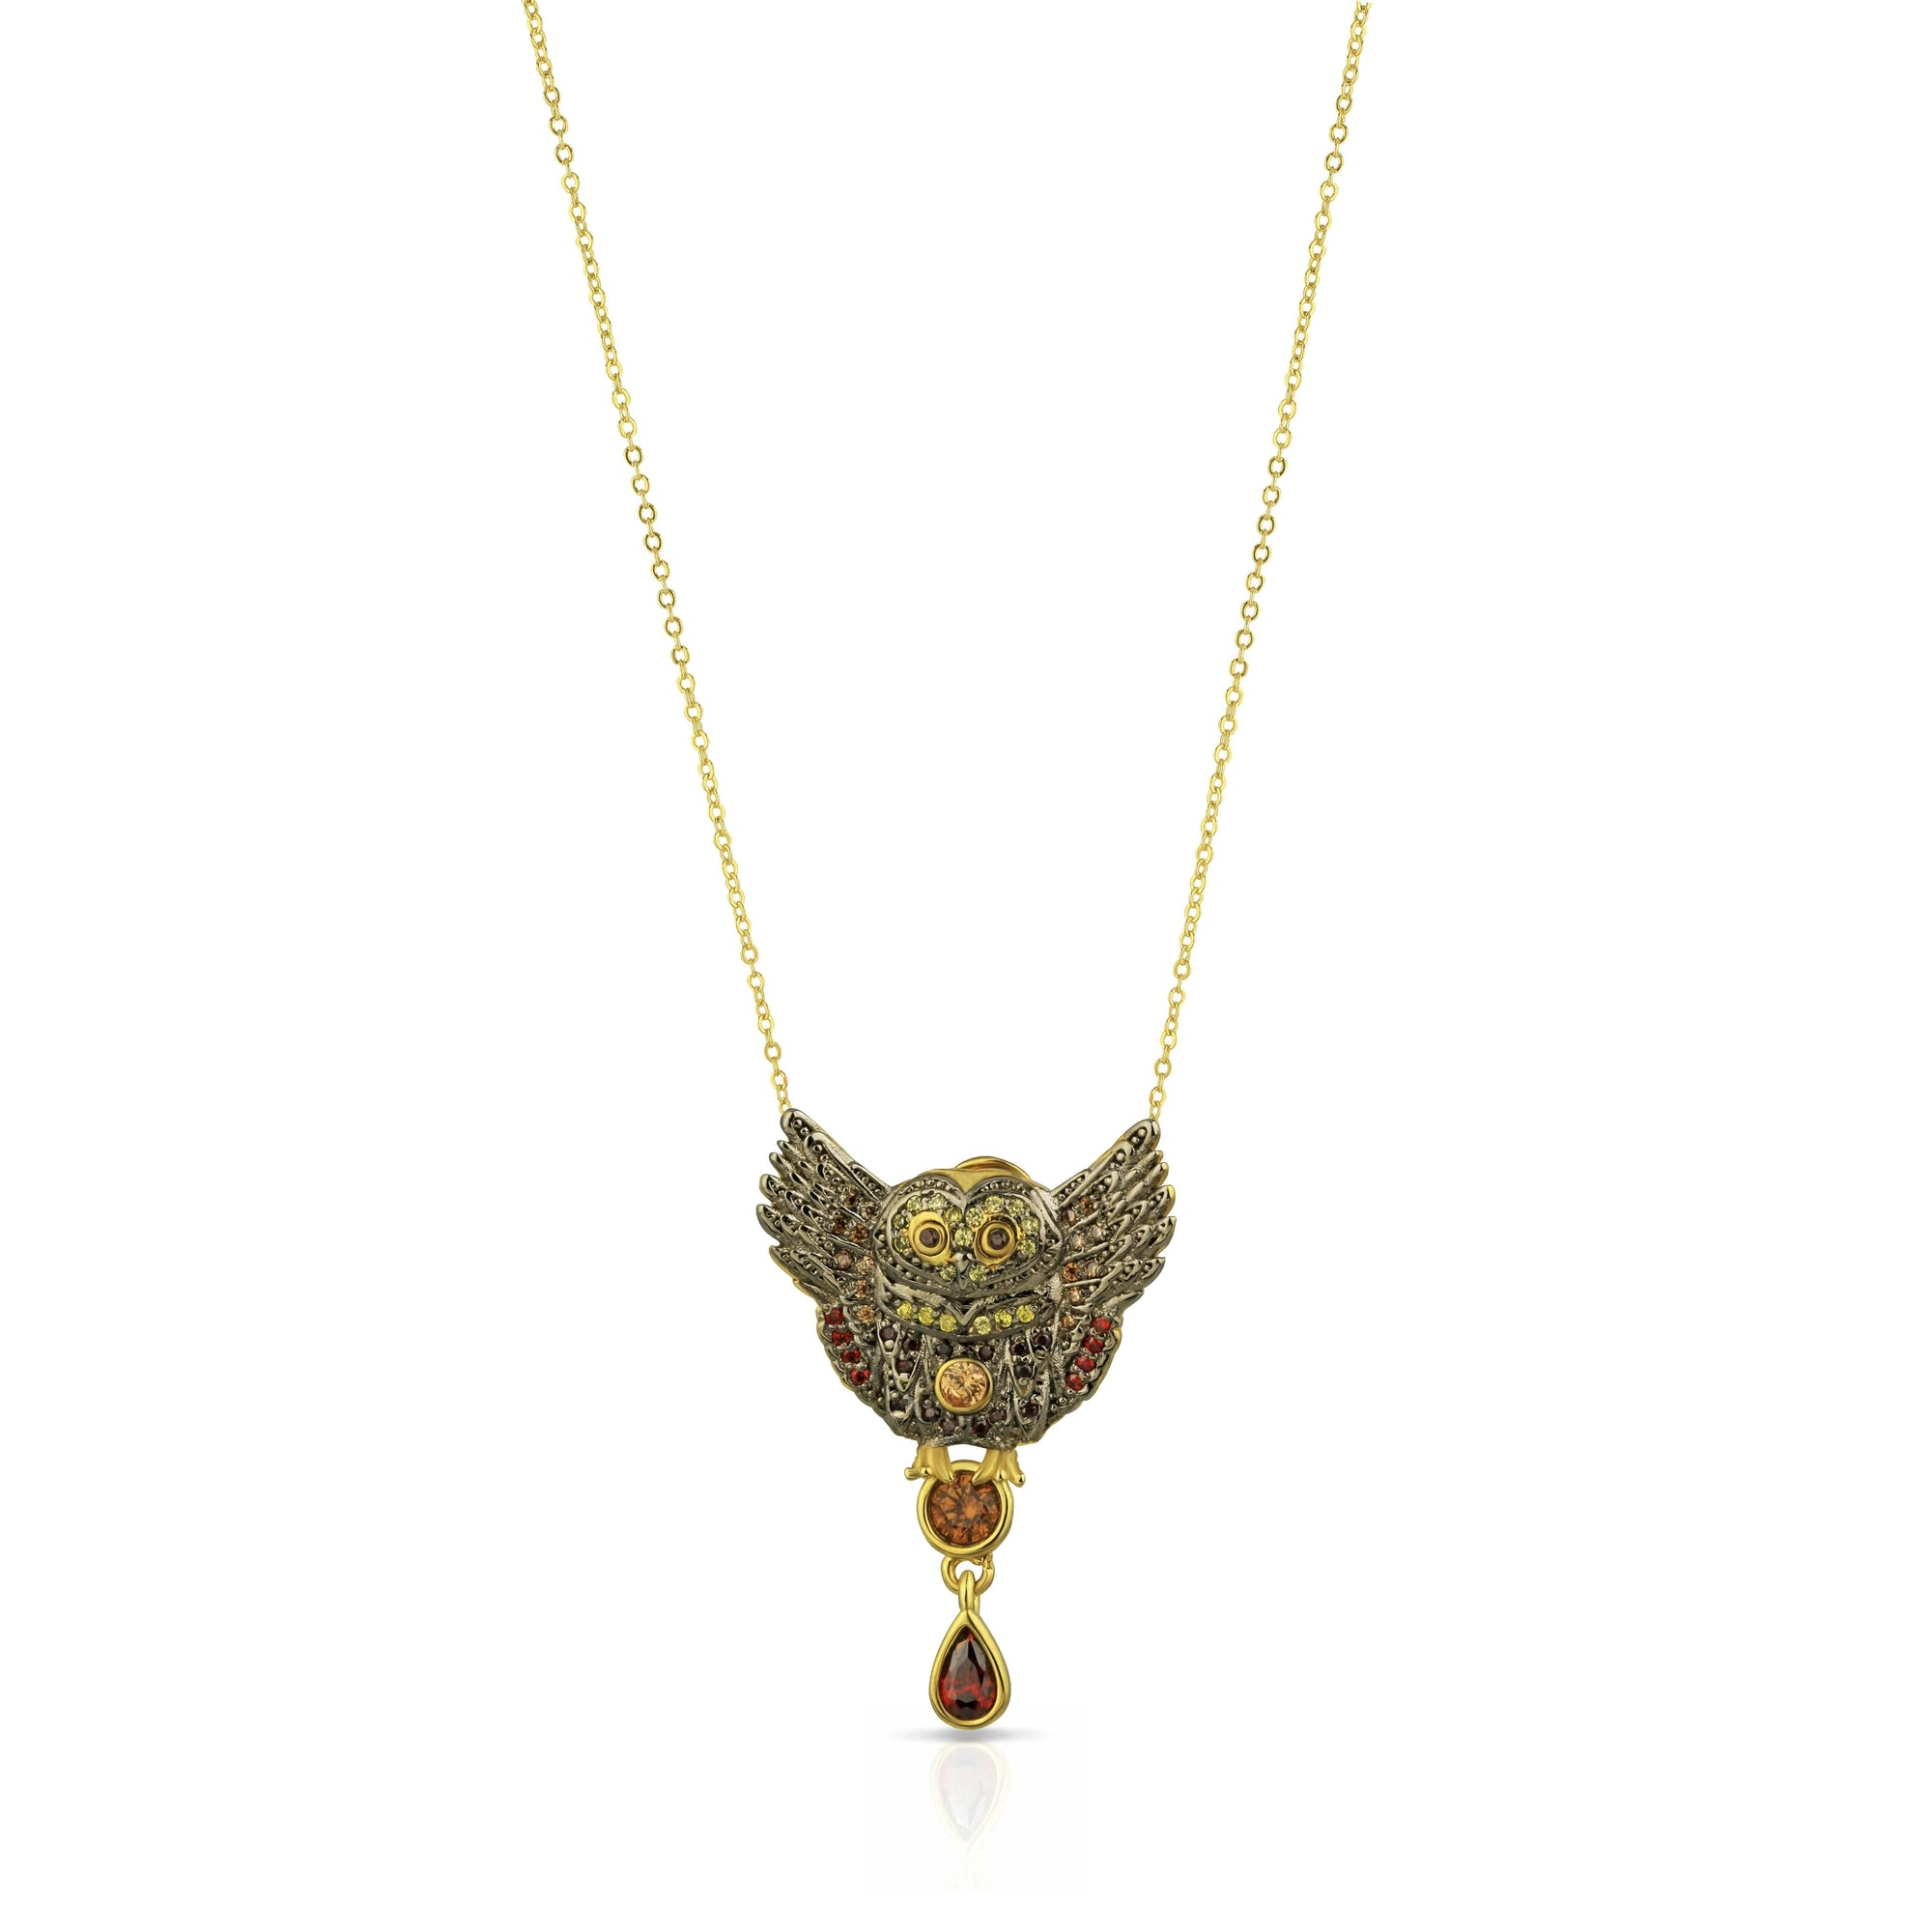 Wise Wings Necklace